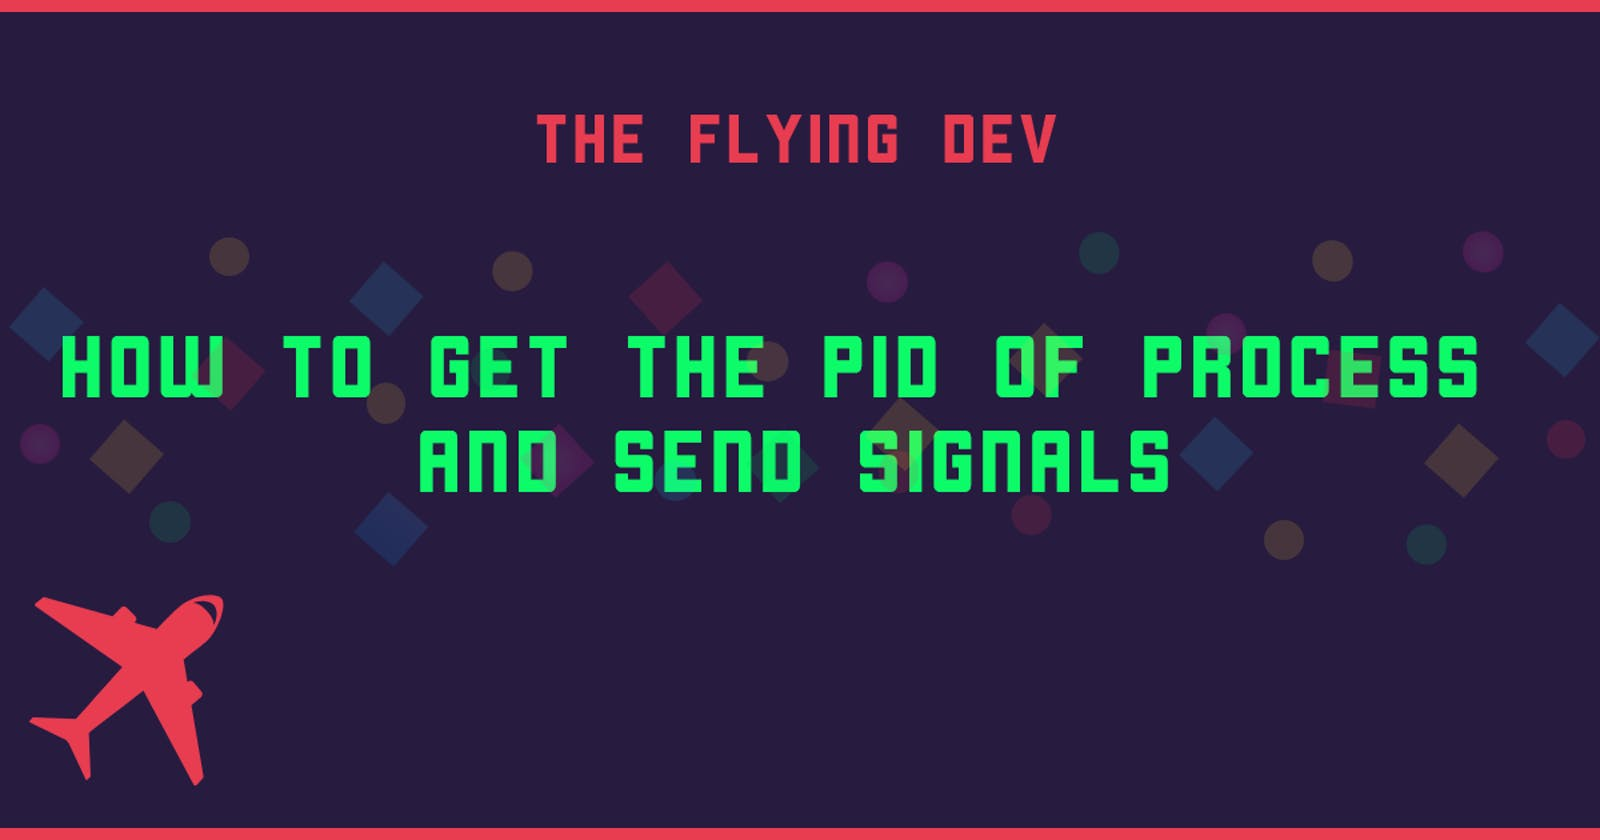 How to get the PID of process and send signals